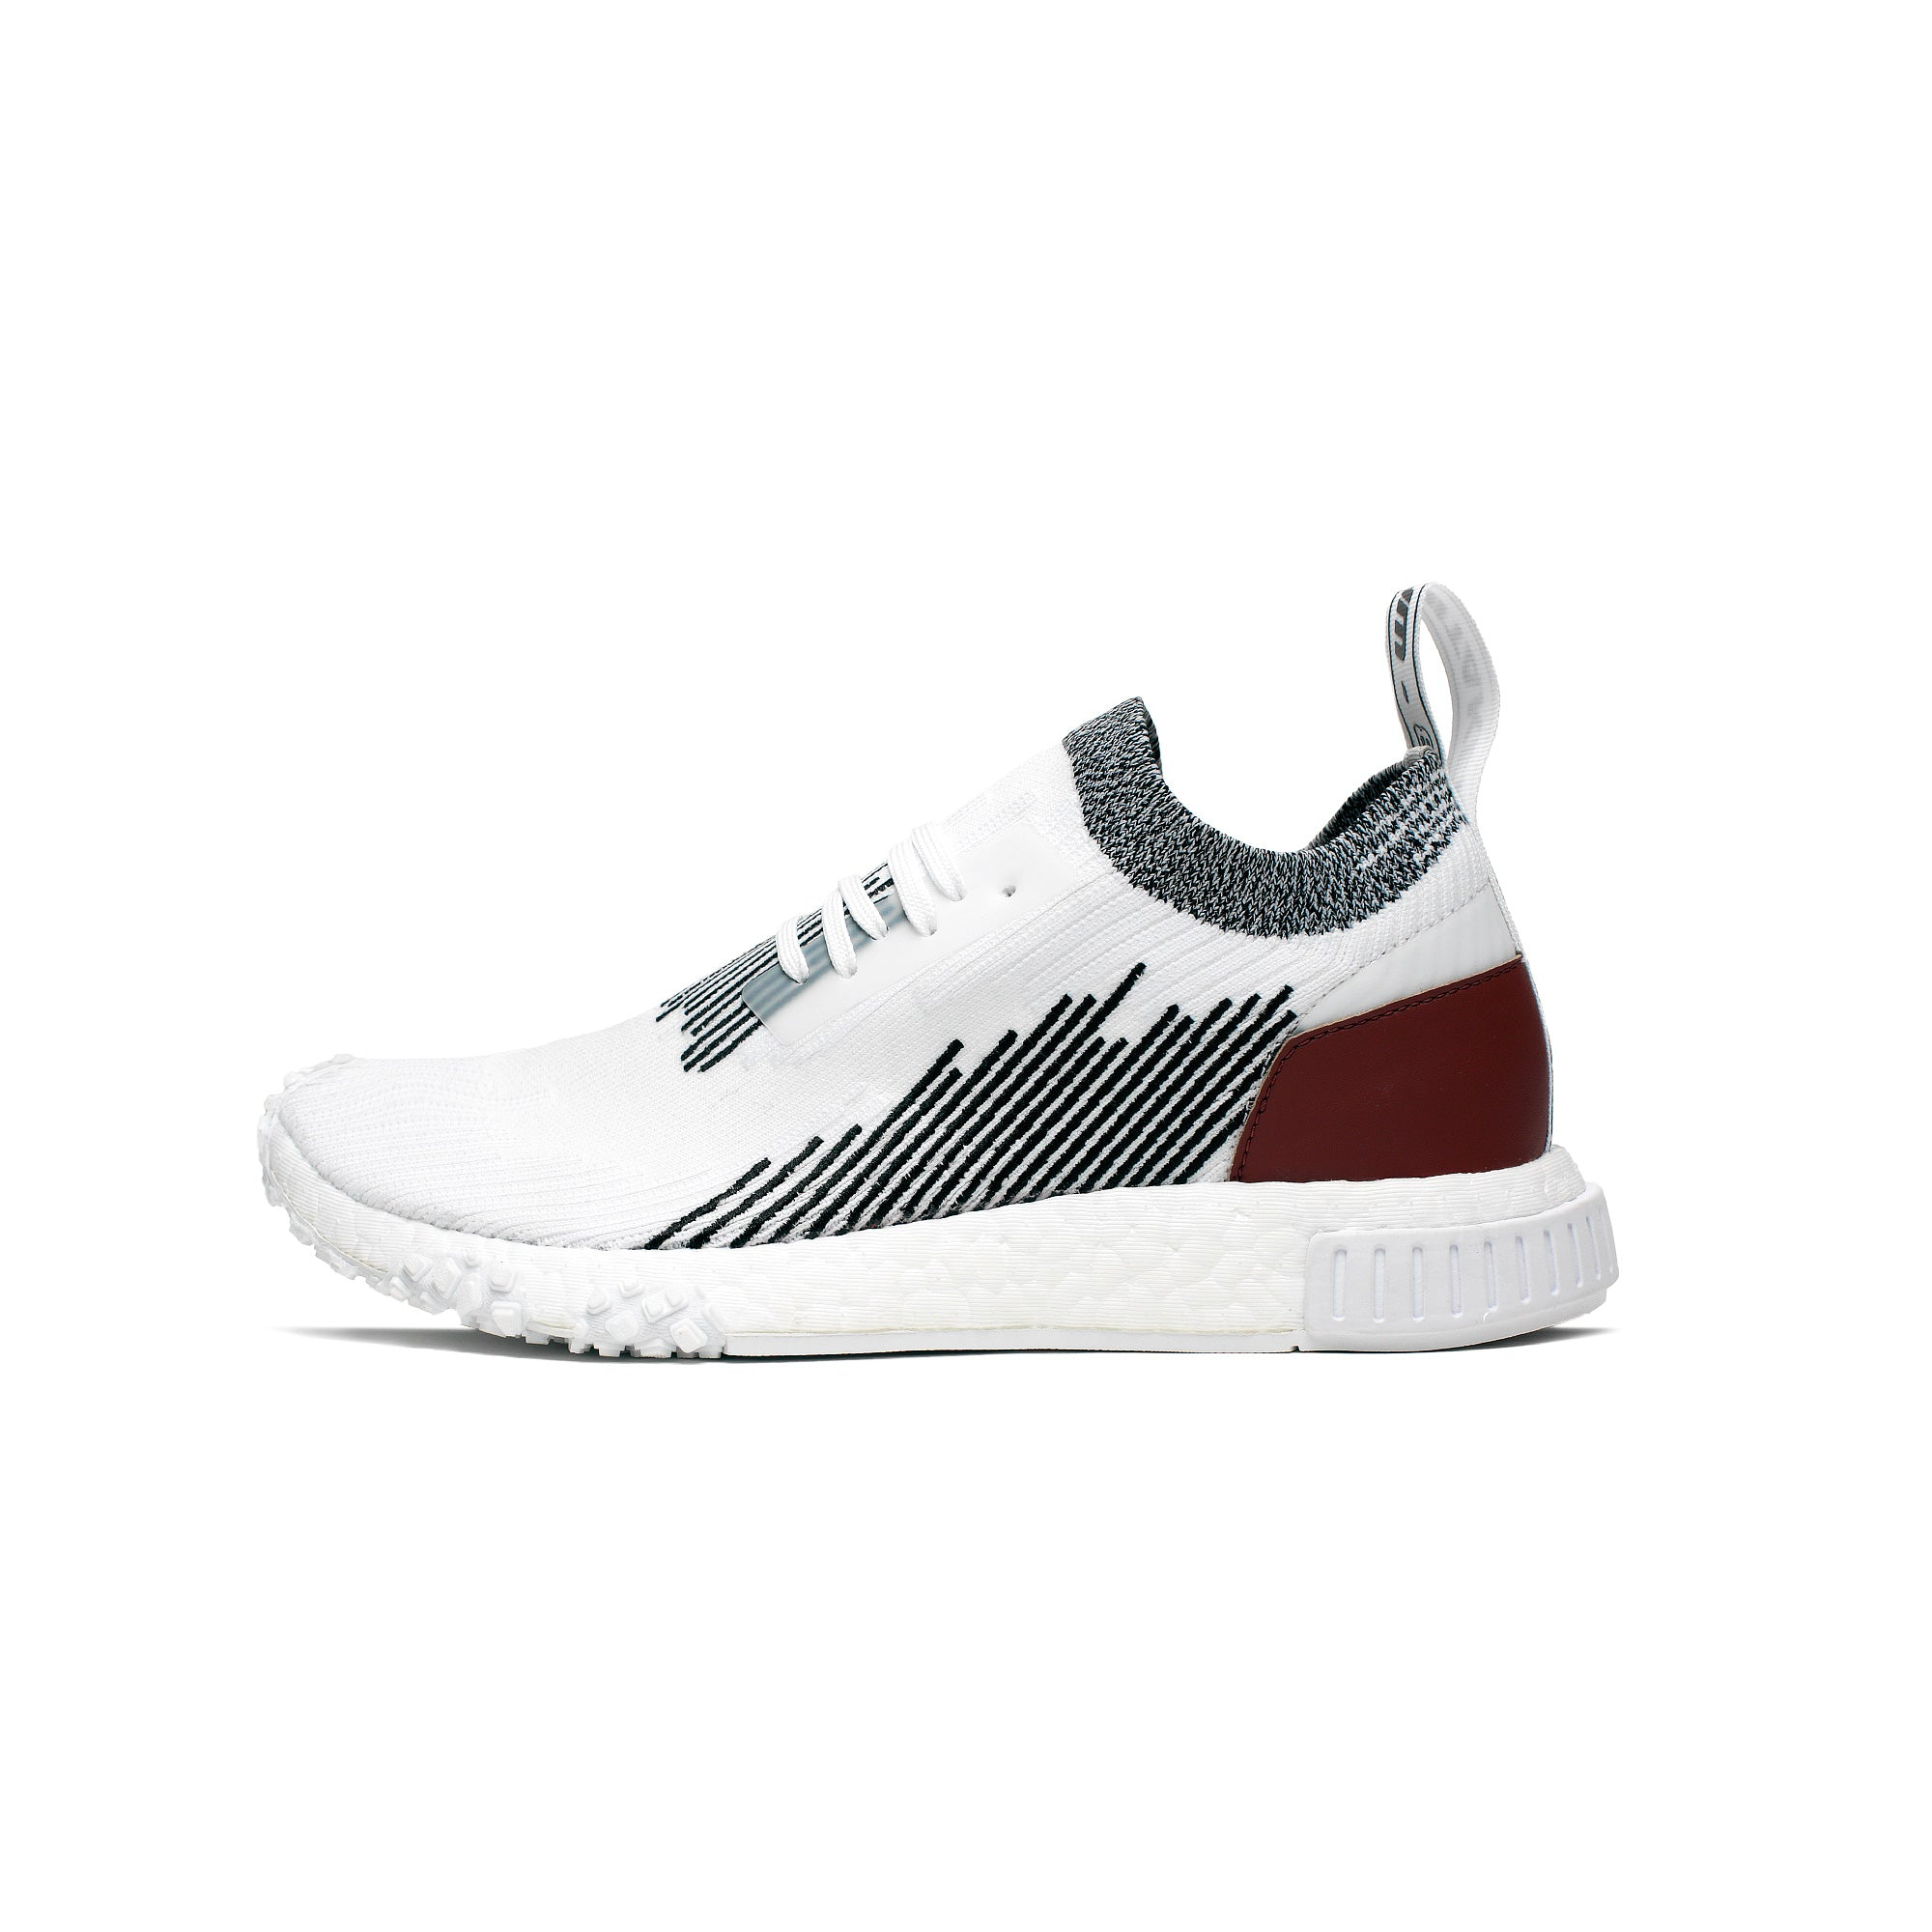 save off 12a3c f5dc4 ... new arrivals adidas nmd racer monaco ac8233 f3a04 ca375